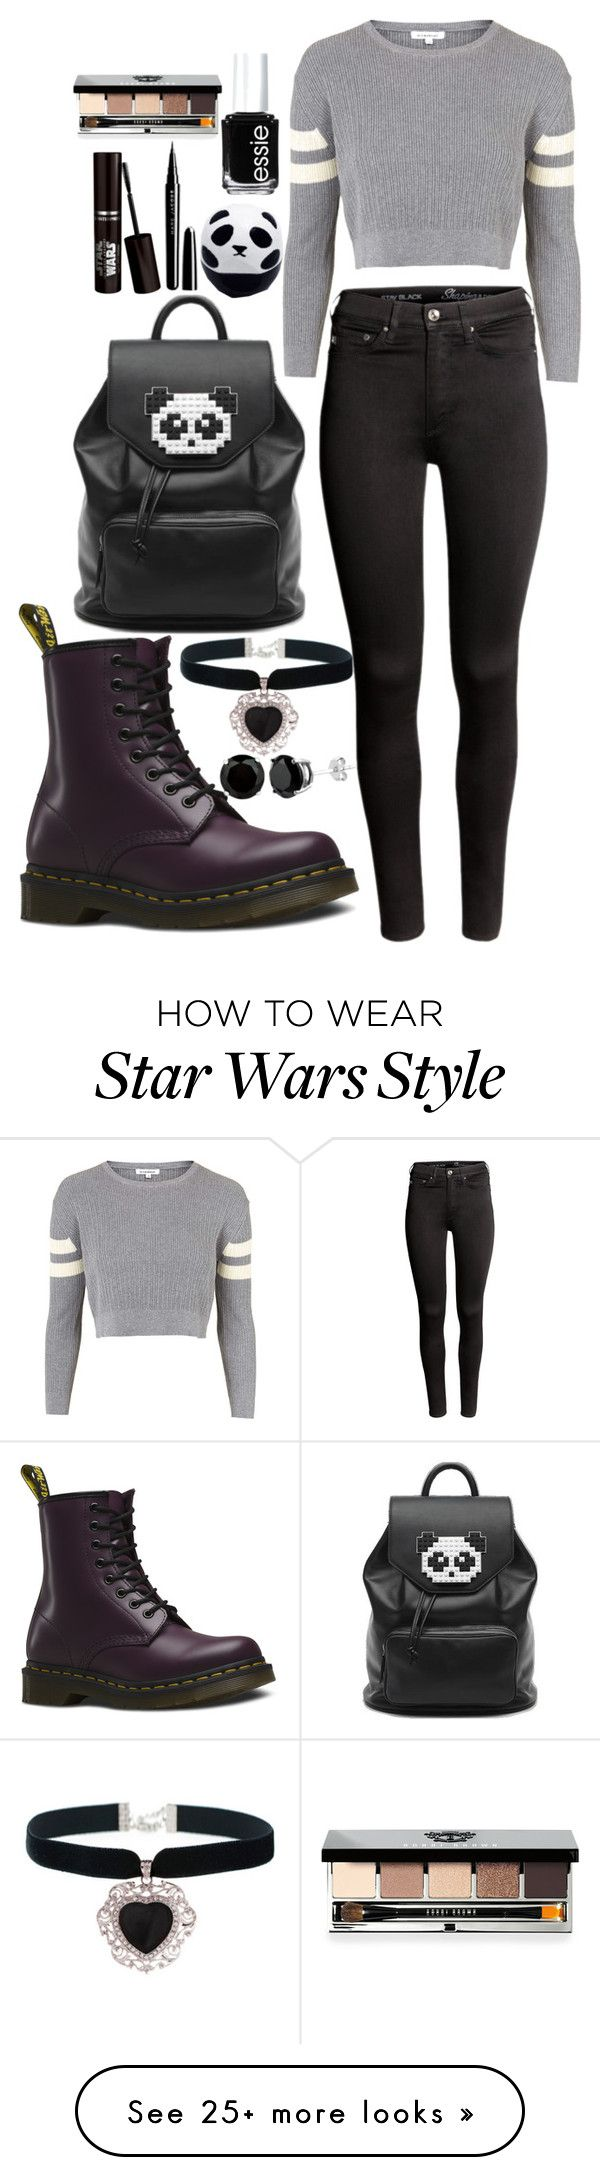 """Casual"" by chap15906248 on Polyvore featuring Topshop, H&M, Dr. Martens, Freddy, Rock 'N Rose, Eos, Marc Jacobs, Essie and Bobbi Brown Cosmetics"